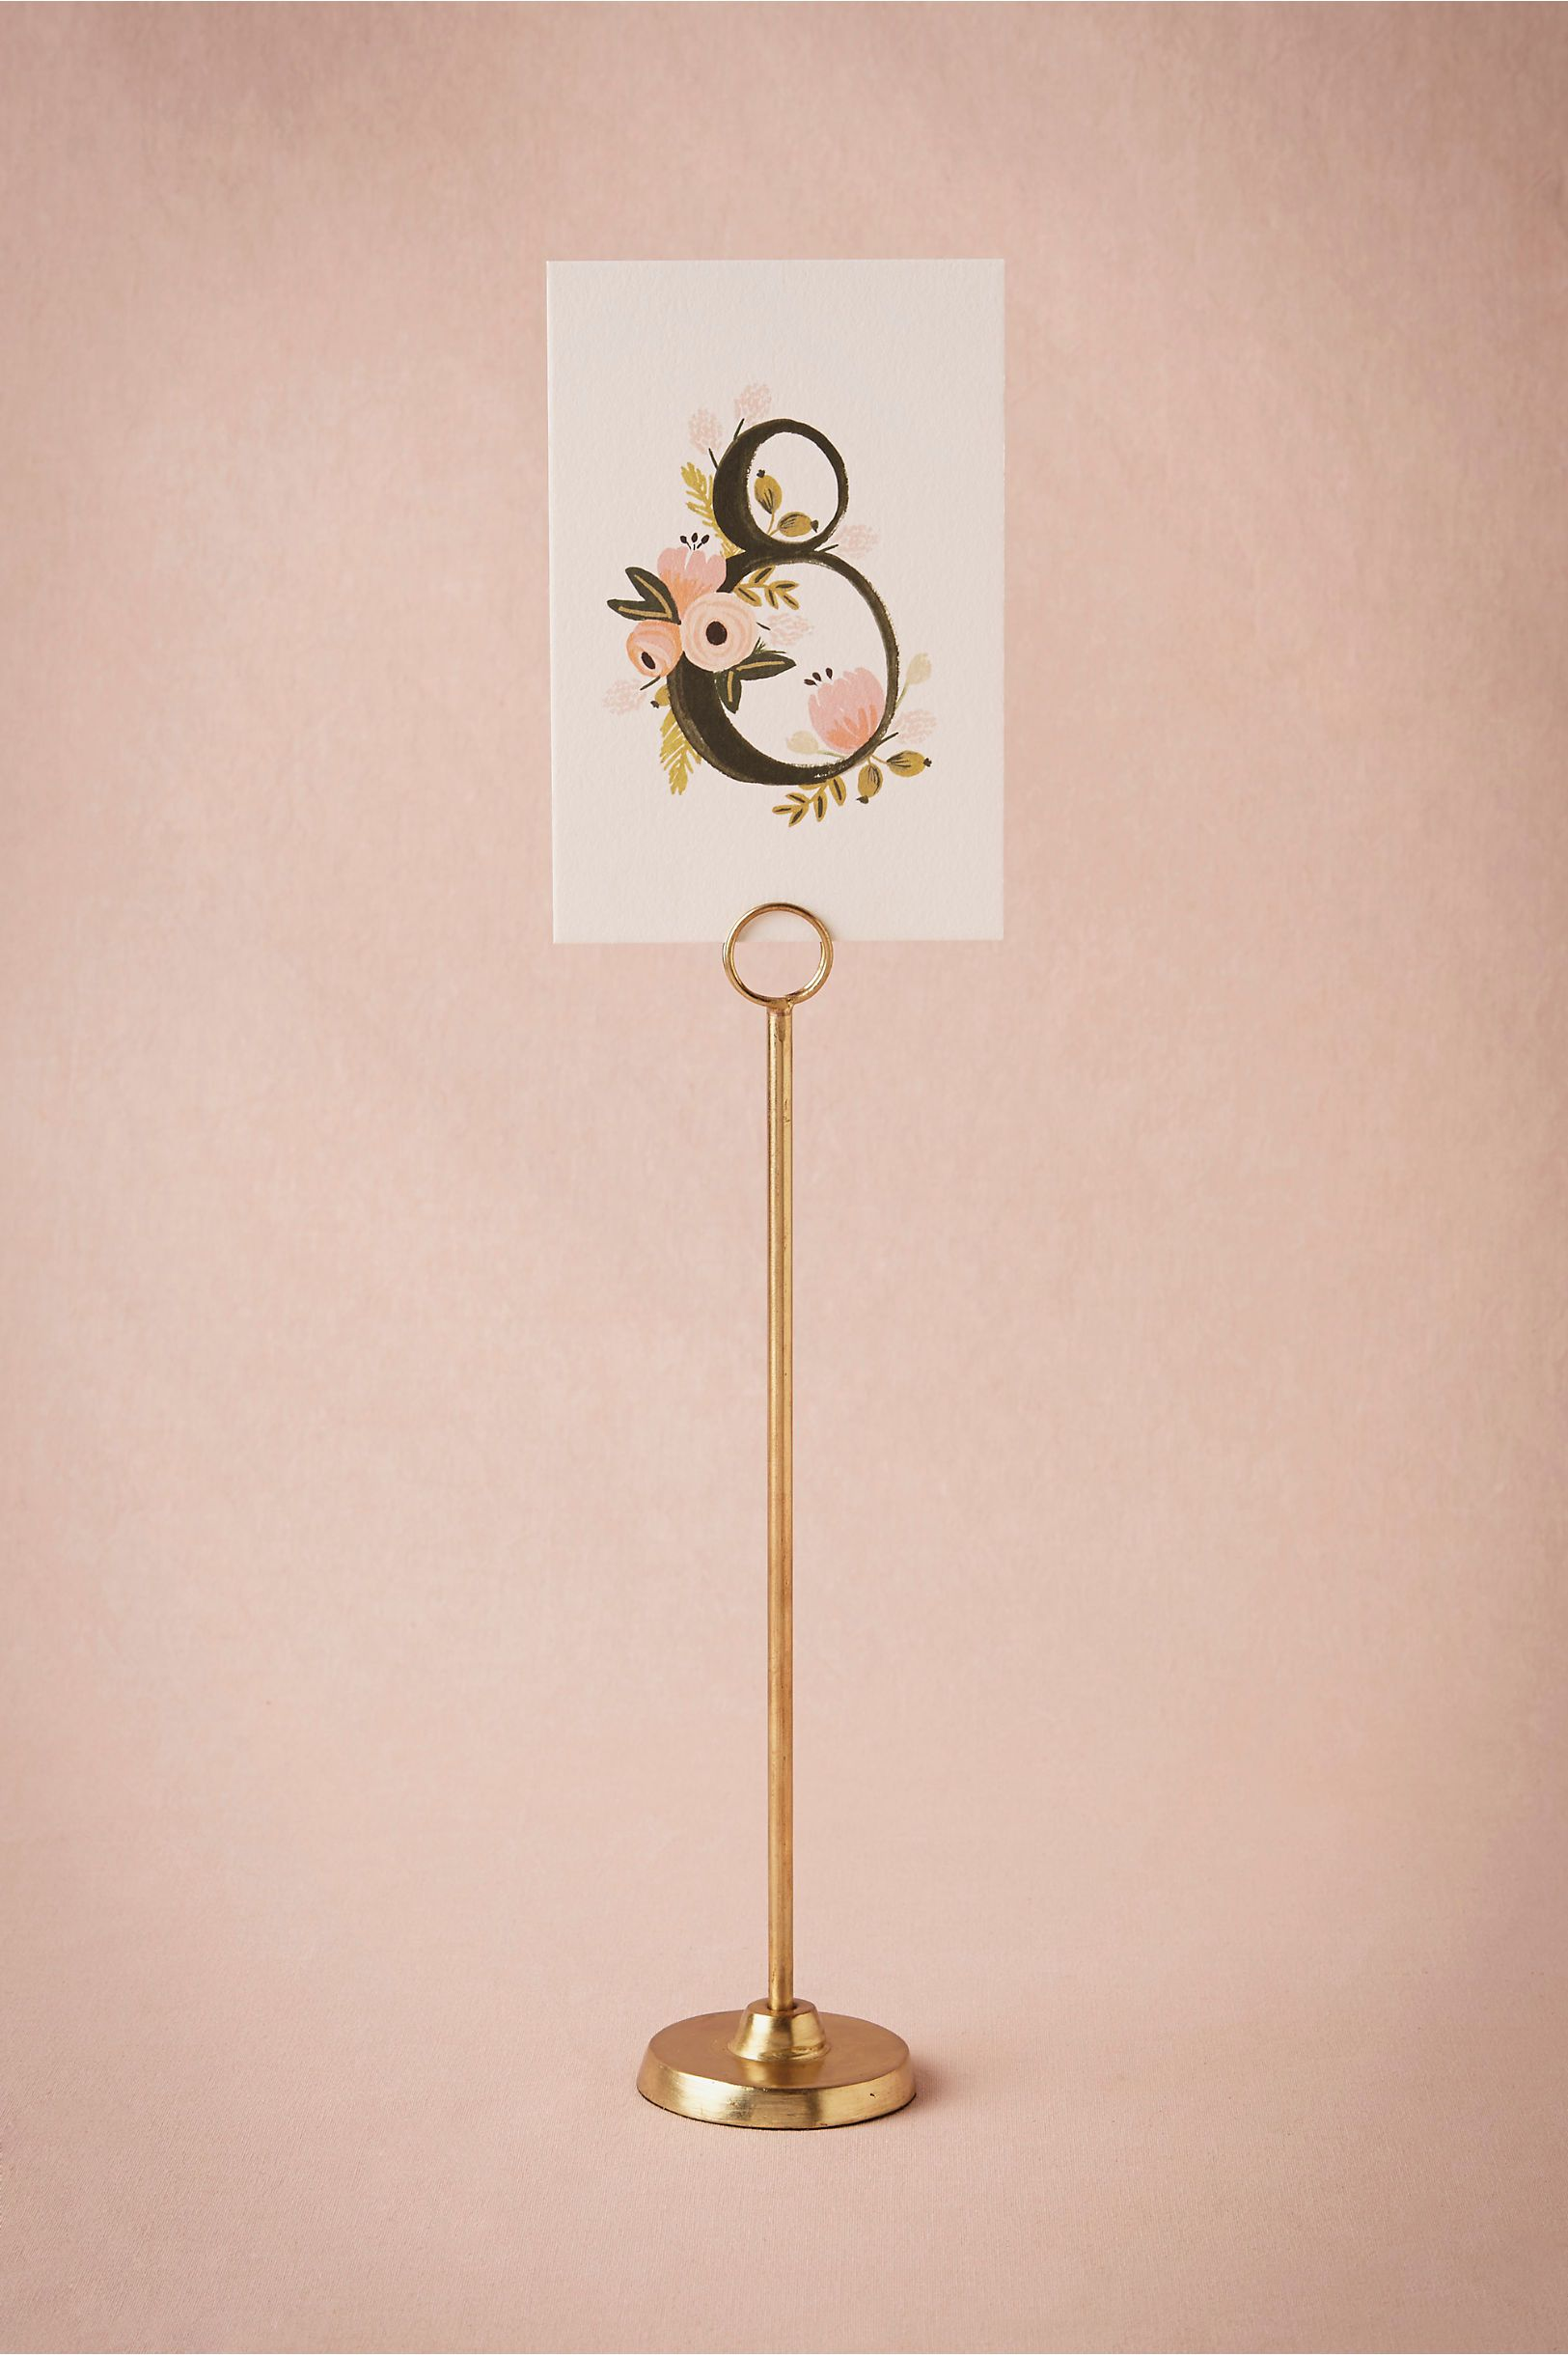 BHLDN Golden Spindle Cardholder in Décor View All Décor at BHLDN ...